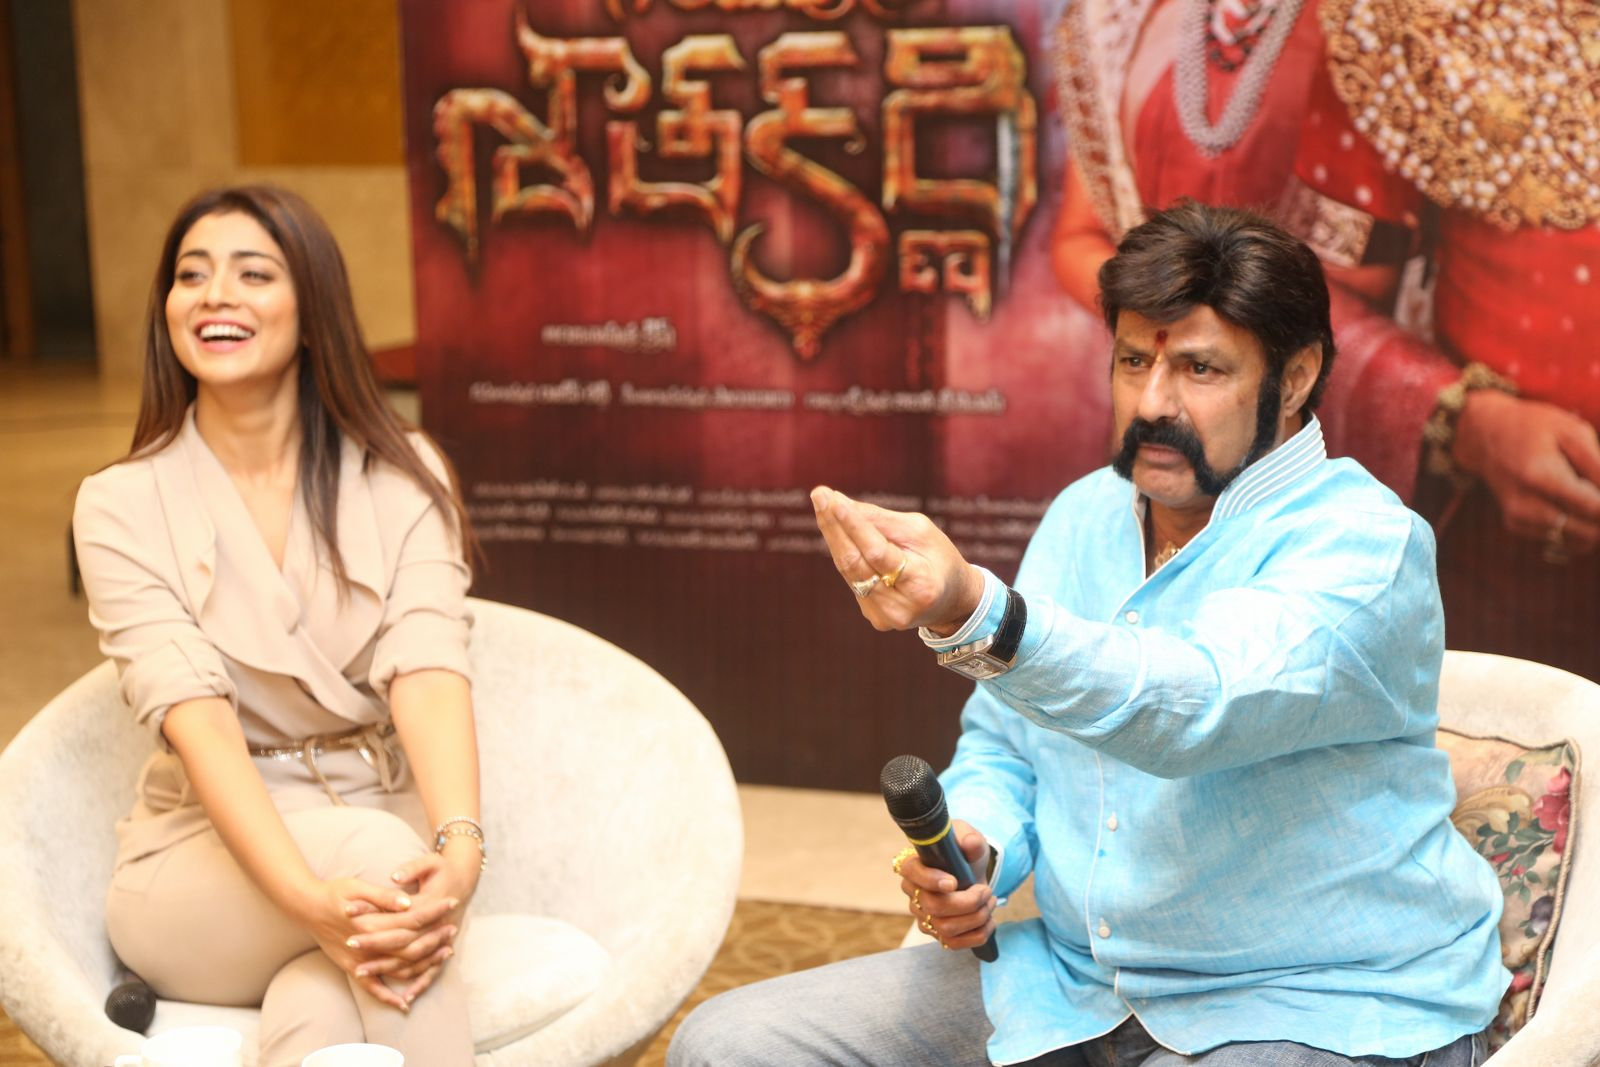 Brand new photo stills From the recent promotional event of Gautamiputra Satakarni   Gautamiputra Satakarni Brand New Stills From Promotional Event of Gautamiputra Satakarni 6R3B3179 1600x1067